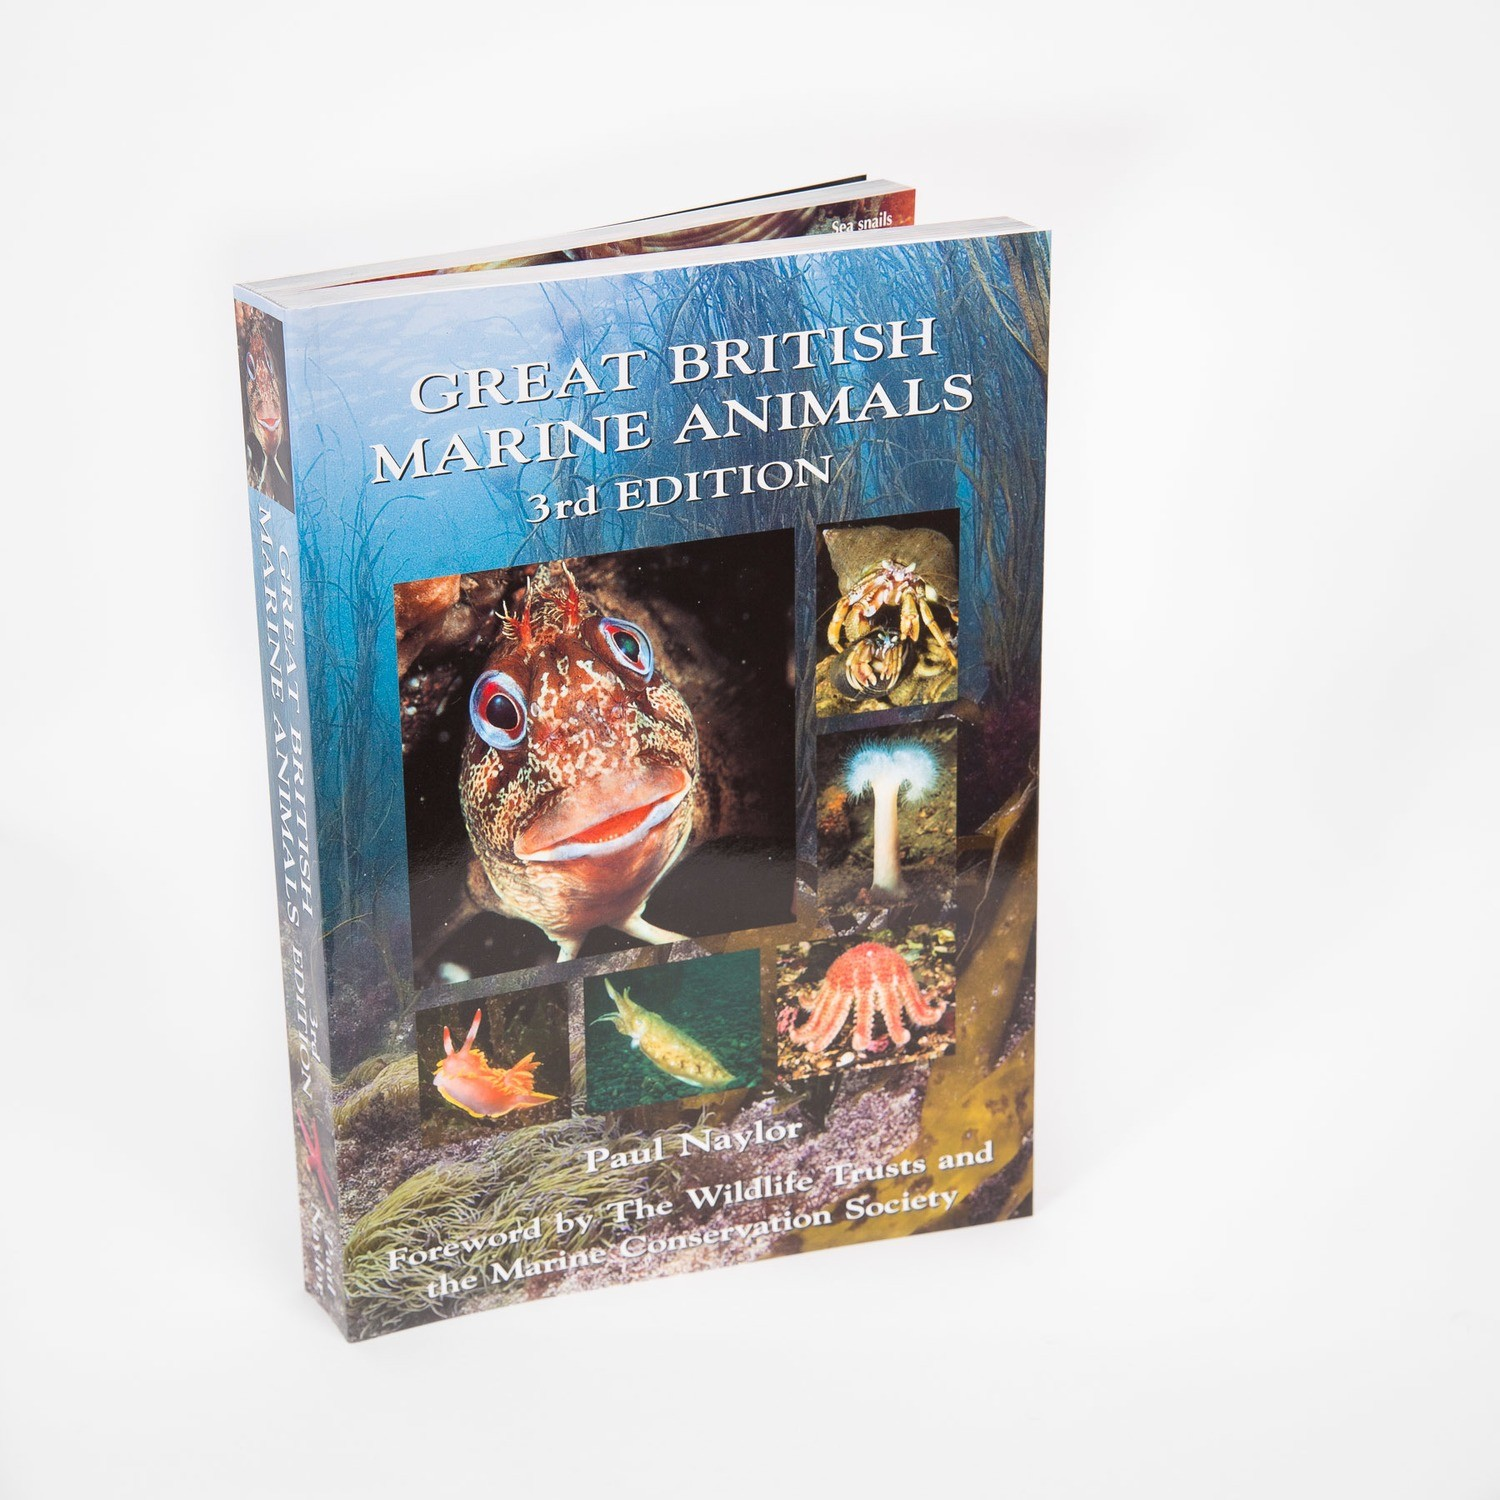 Great British Marine Animals 3rd Edition